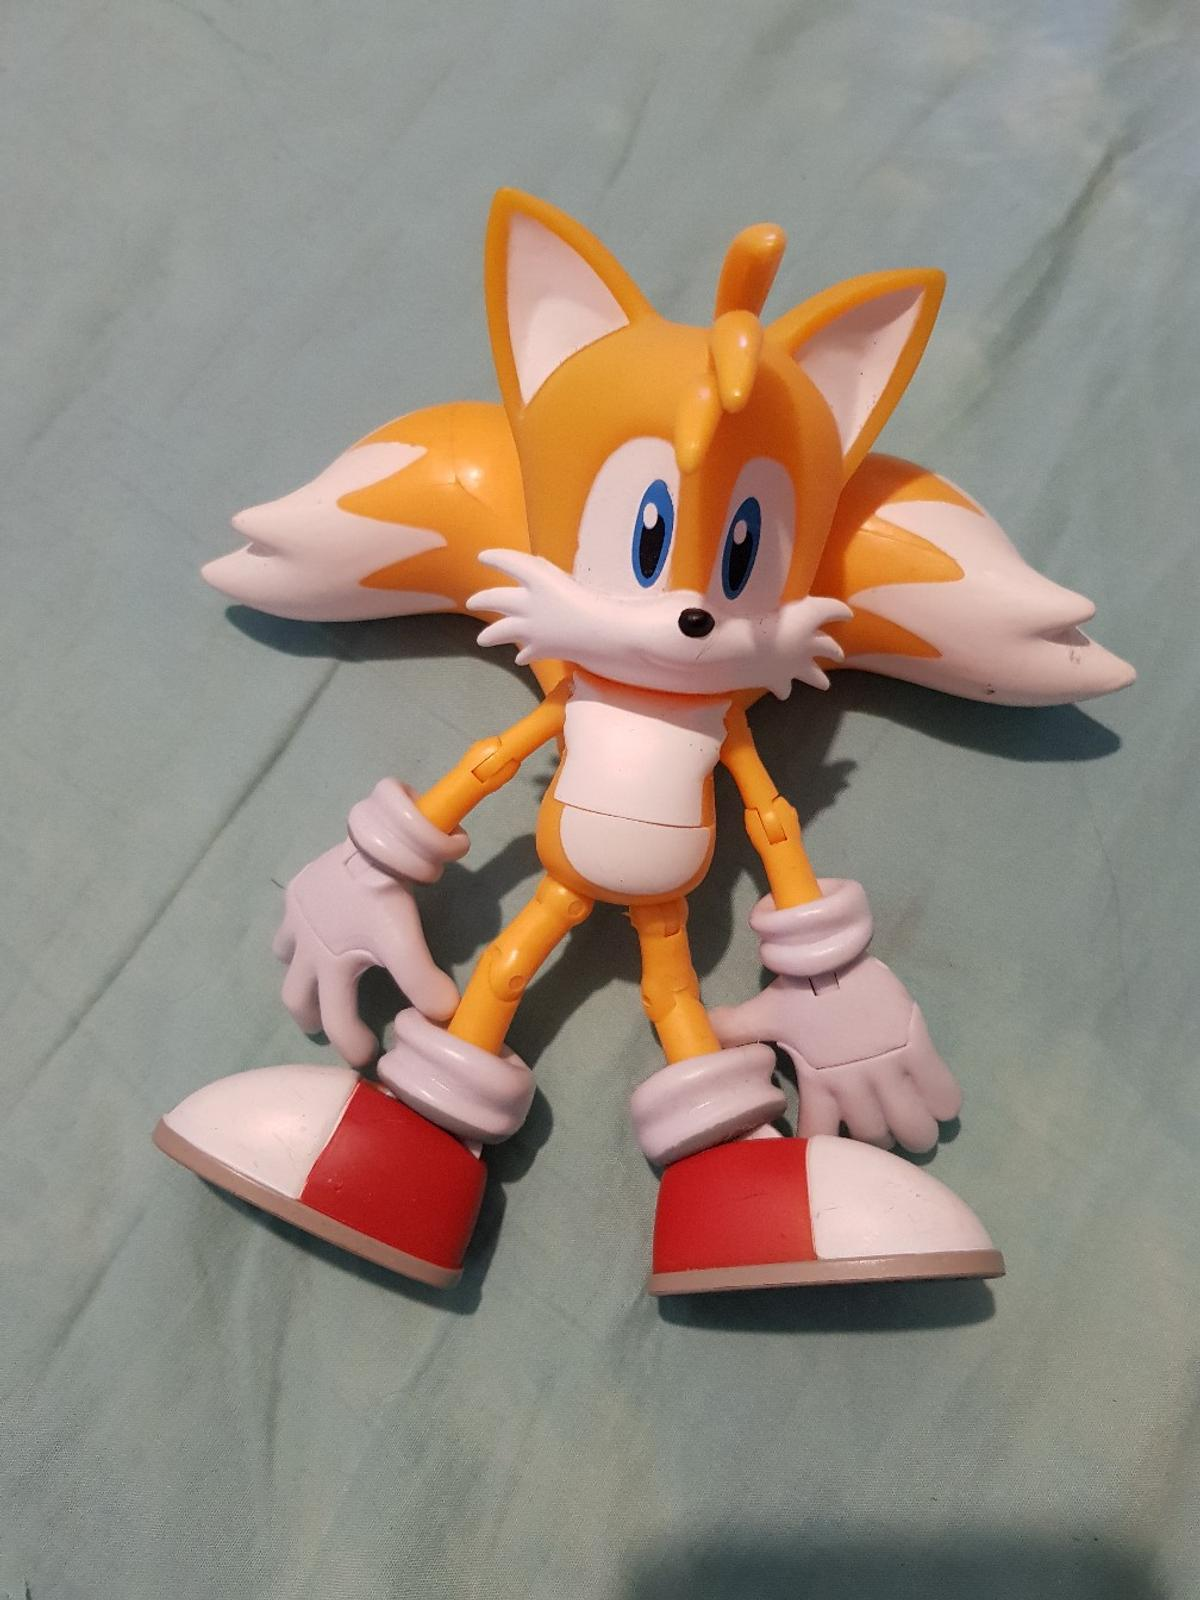 Tails Action Figure Sonic The Hedgehog In Nn18 Corby For 5 00 For Sale Shpock